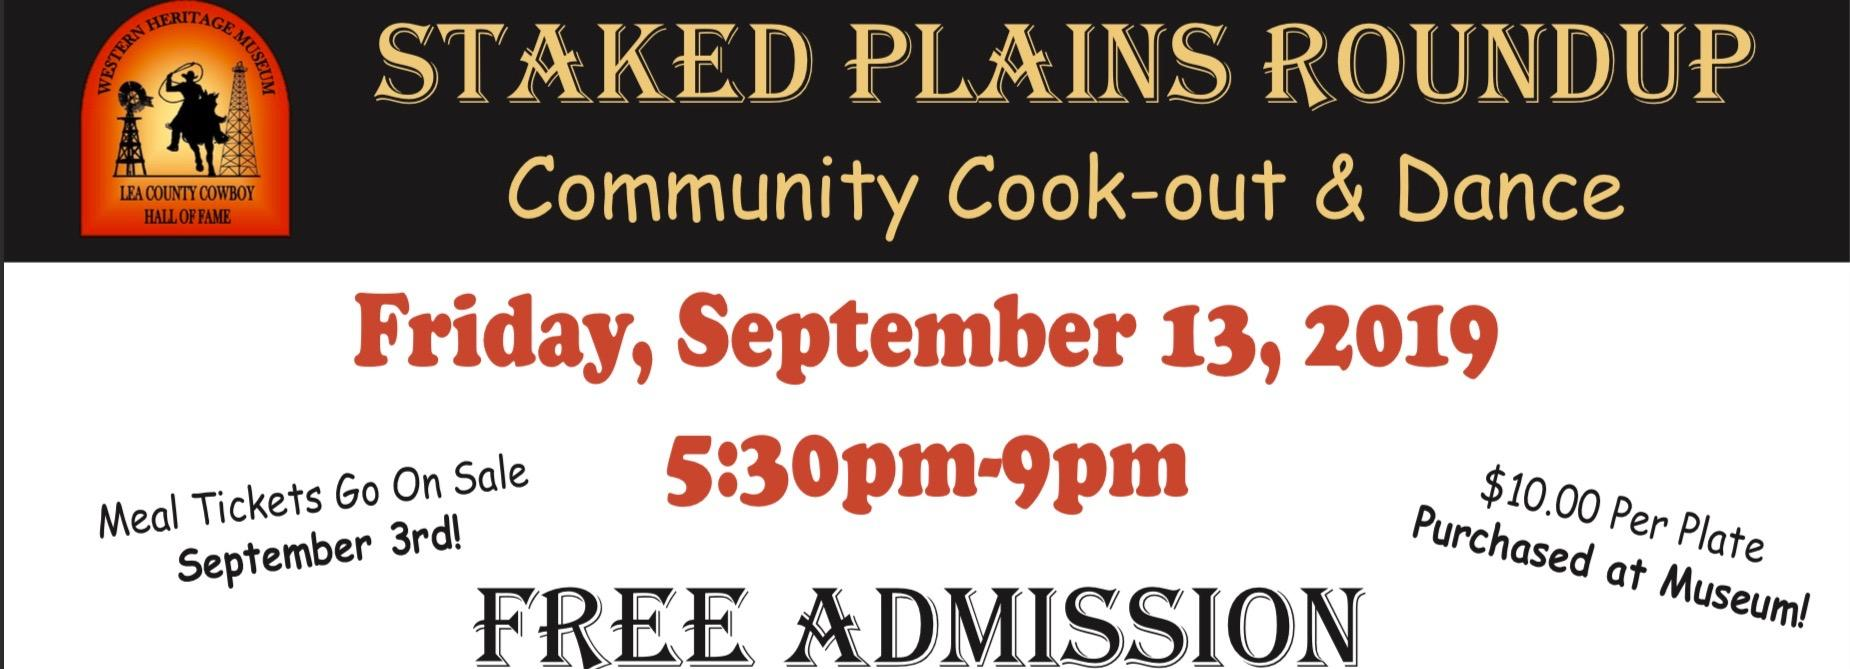 Staked Plains Roundup Community Event